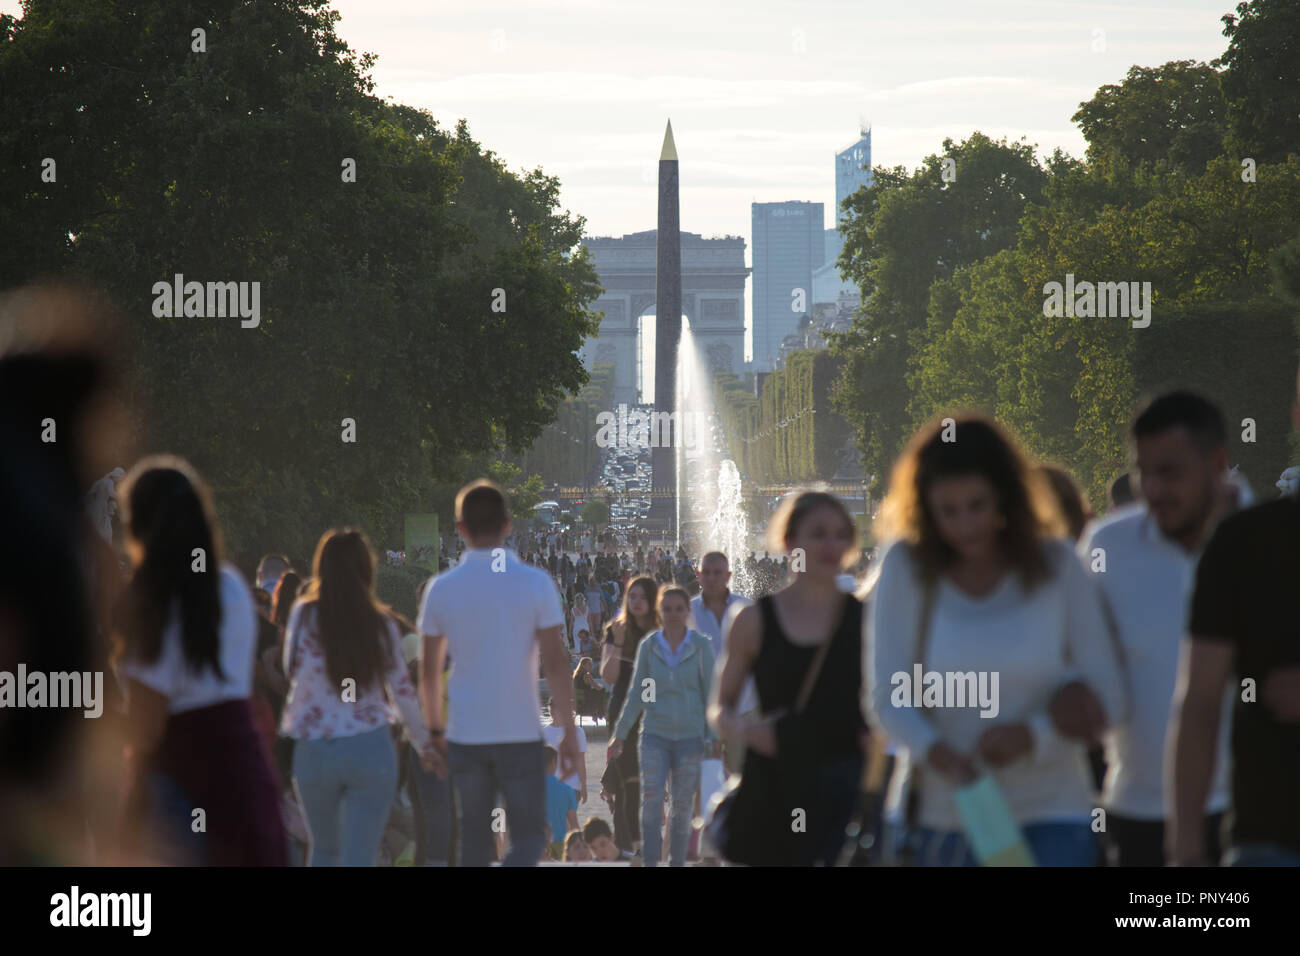 People visiting Place de la Concorde with in the background a beautiful superposition of the obelisk and Arc de Triomphe - Stock Image